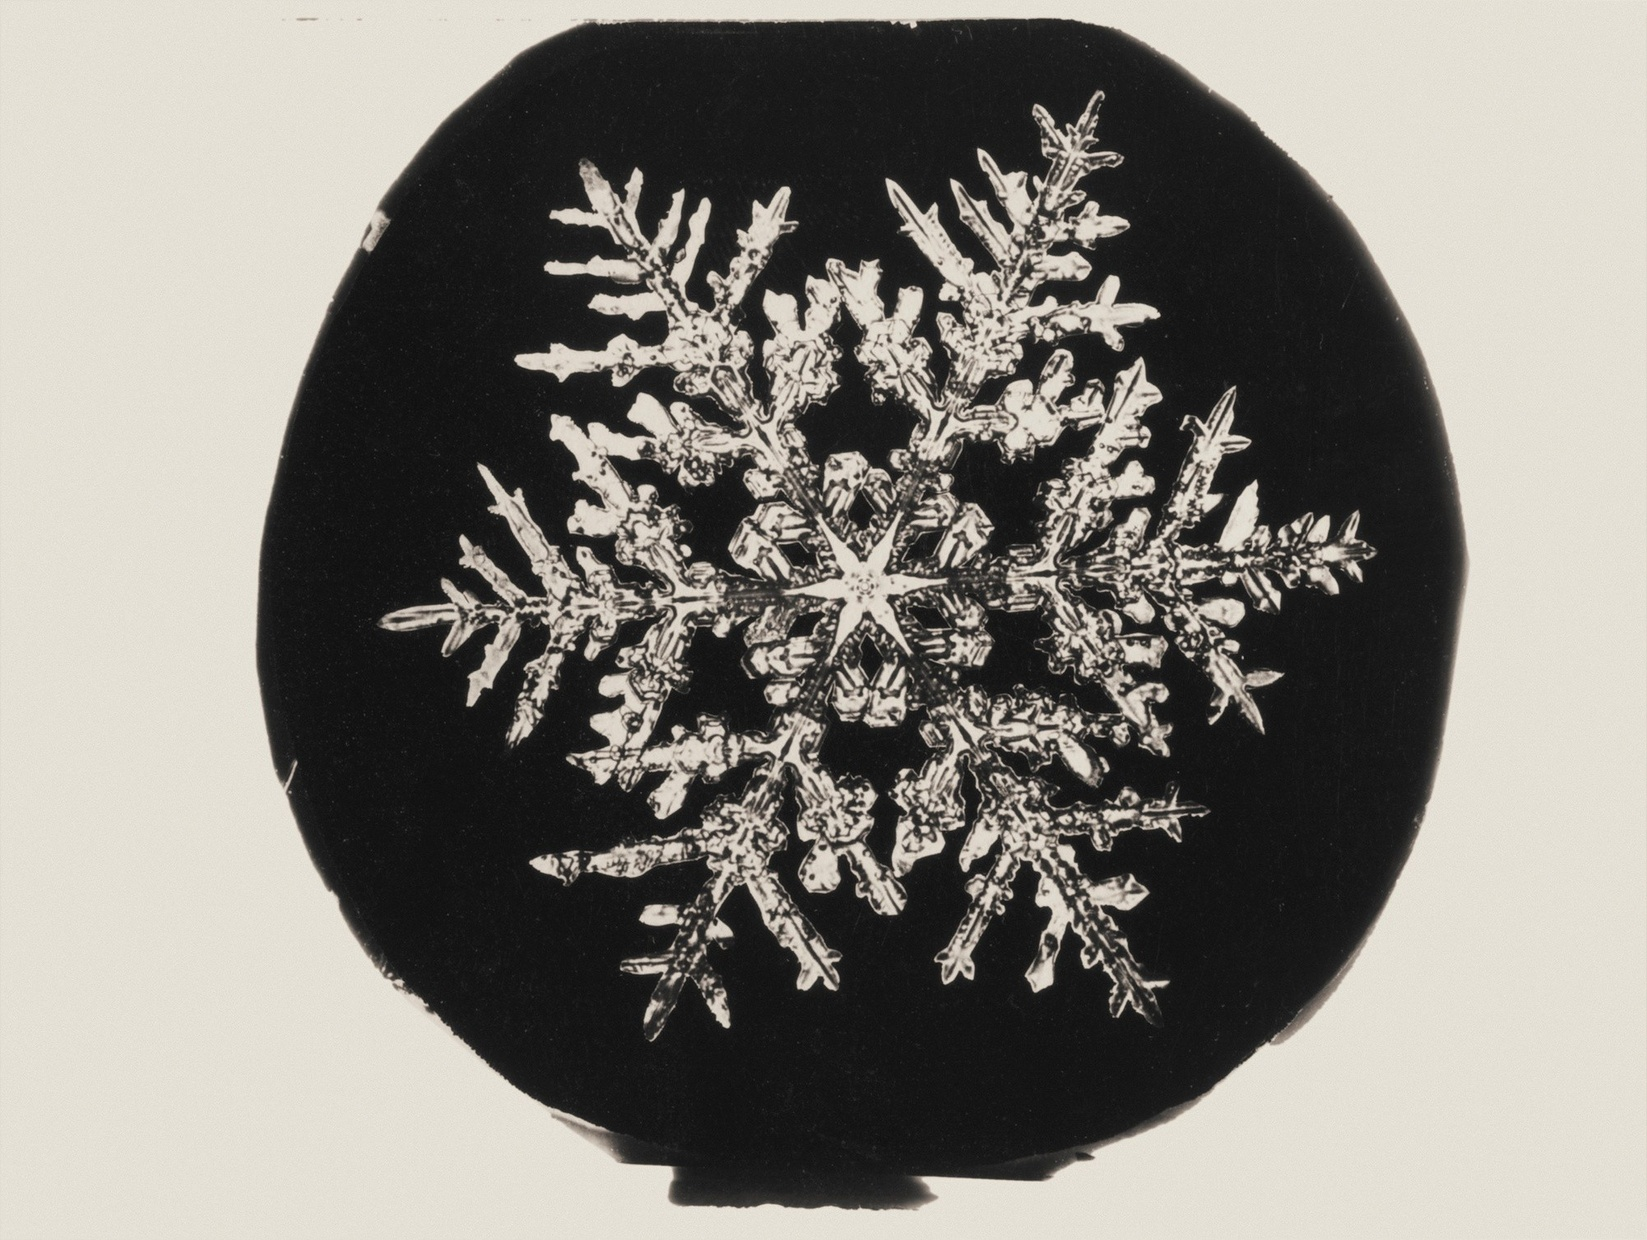 A black and white photograph of a snowflake viewed through a microscope.